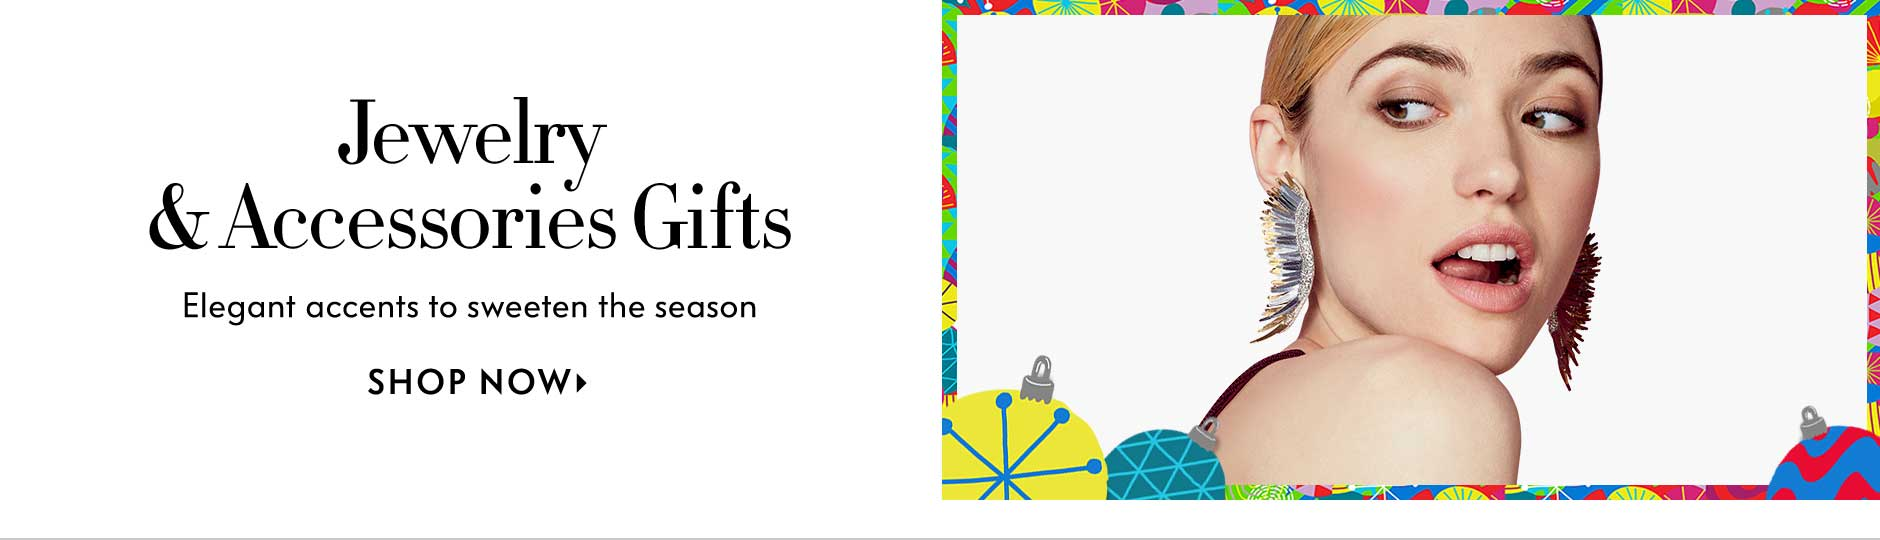 Jewelry & accessories gifts, elegant accents to sweeten the season